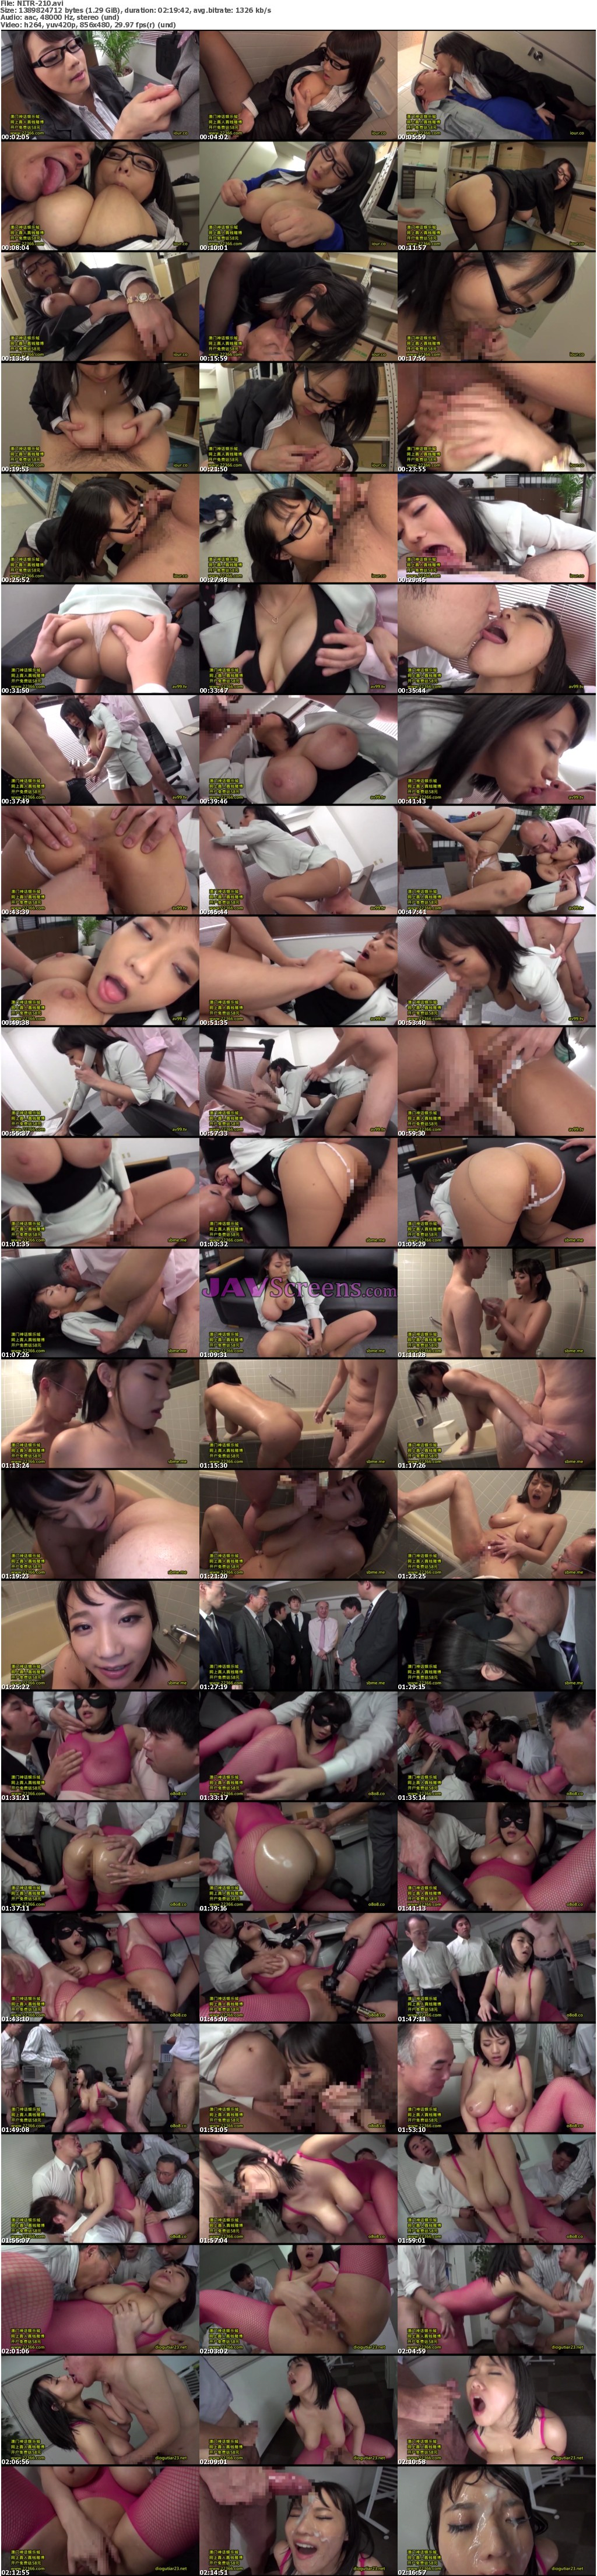 NITR-210.jpg - JAV Screenshot